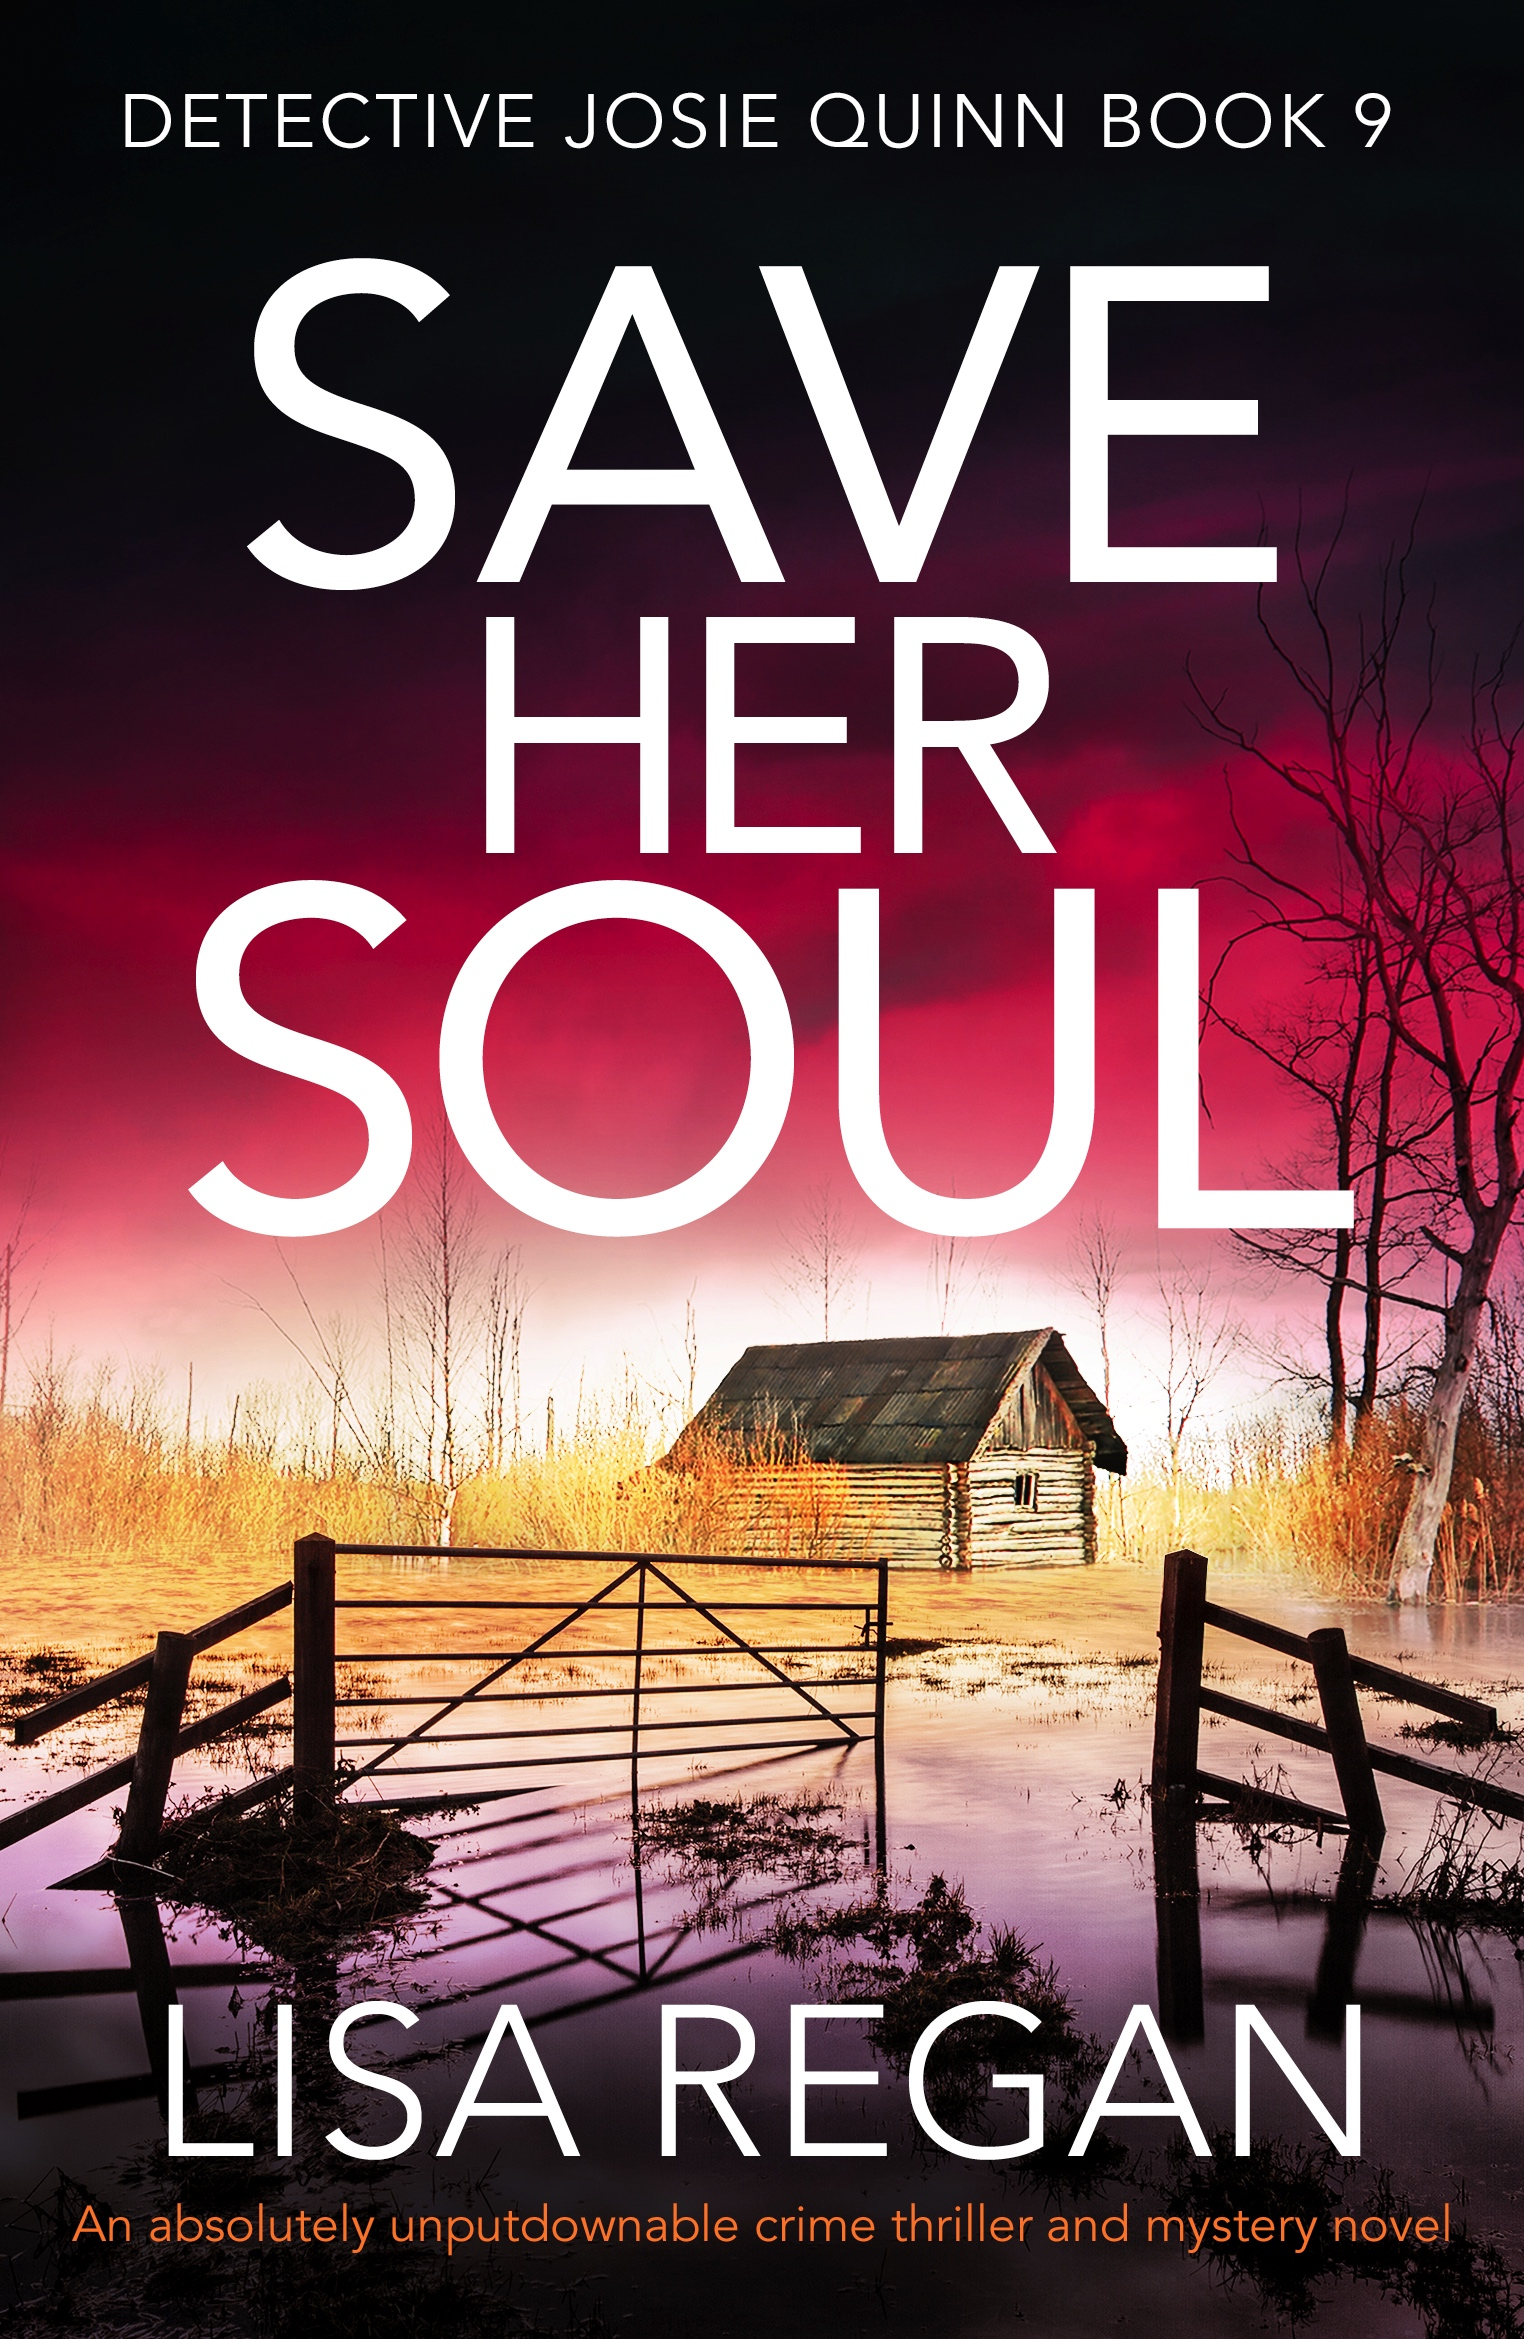 Save her Soul by Lisa Regan @lisalregan @bookouture #BookReview #DetectiveJosieQuinn #BlogTour #Book624 #NetGalleyCountdown